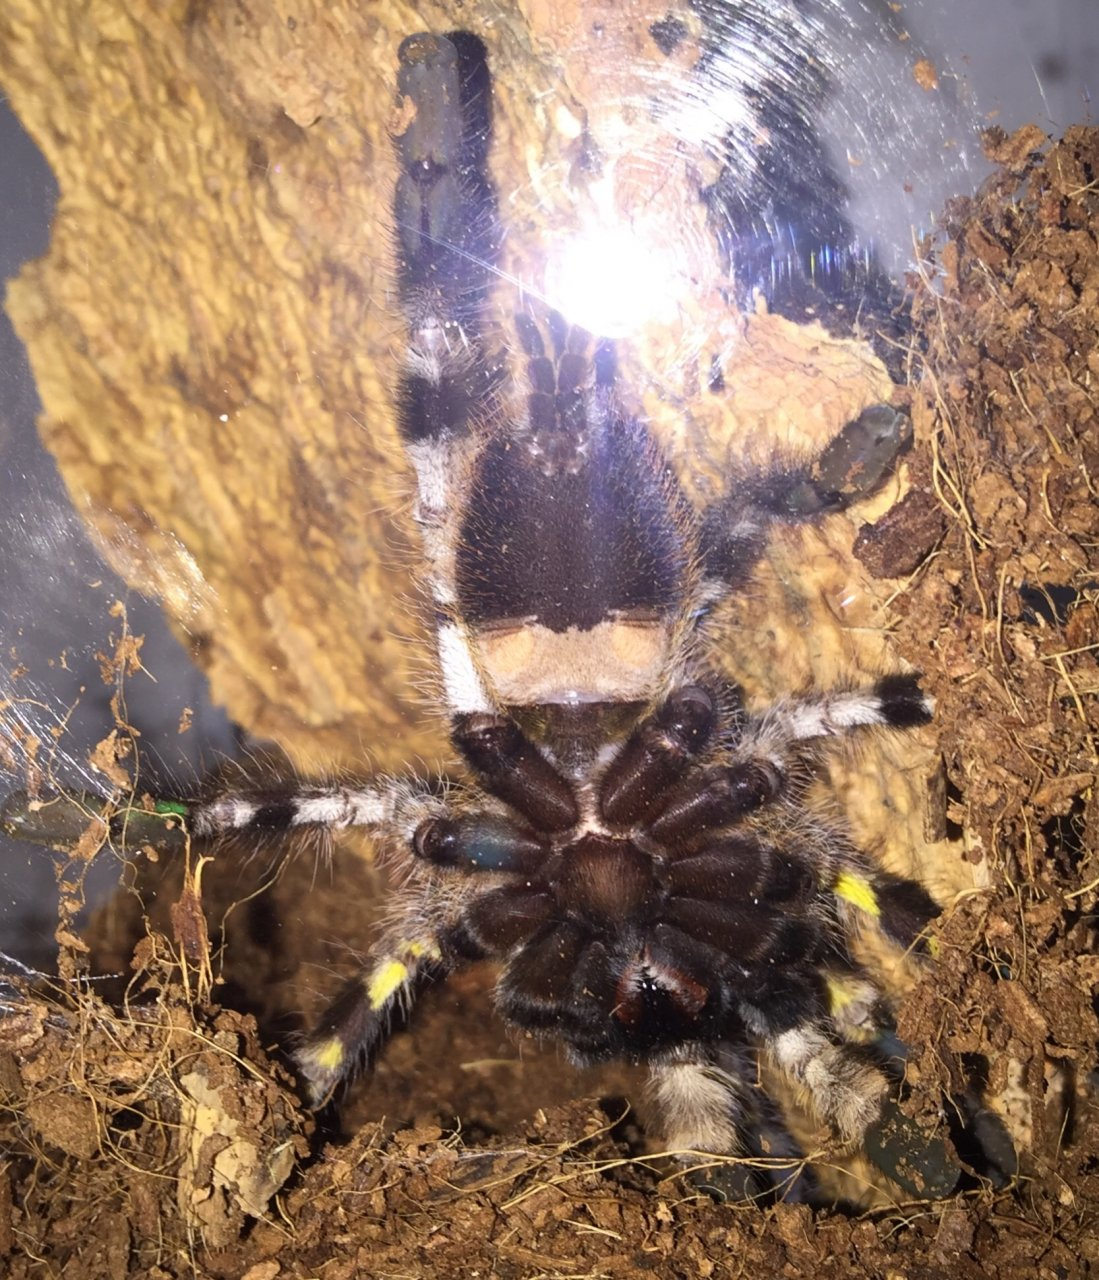 P.regalis sex?